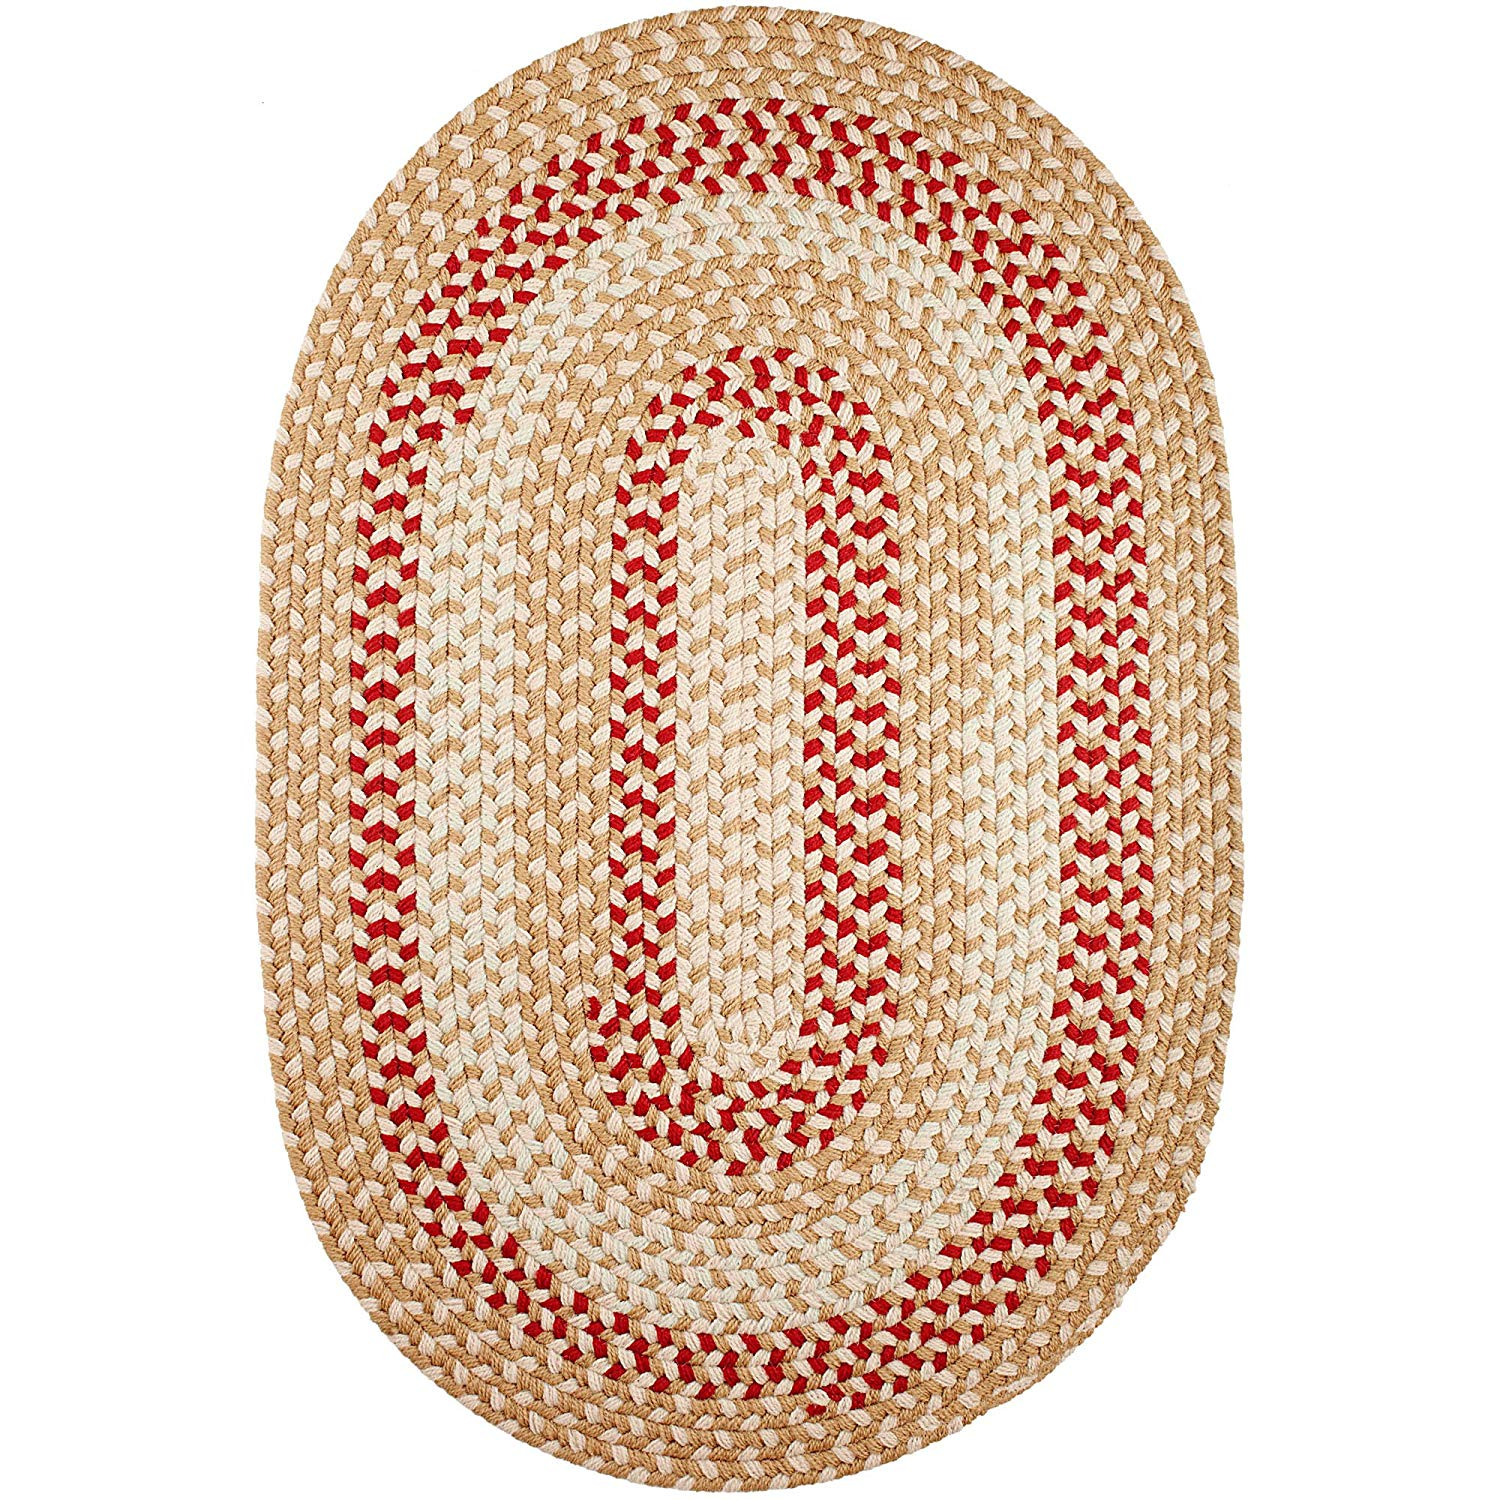 Super Area Rugs Homespun Braided Rug Indoor Outdoor Rug Textured Durable Neutral Patio Deck Carpet, 10' X 13' Oval